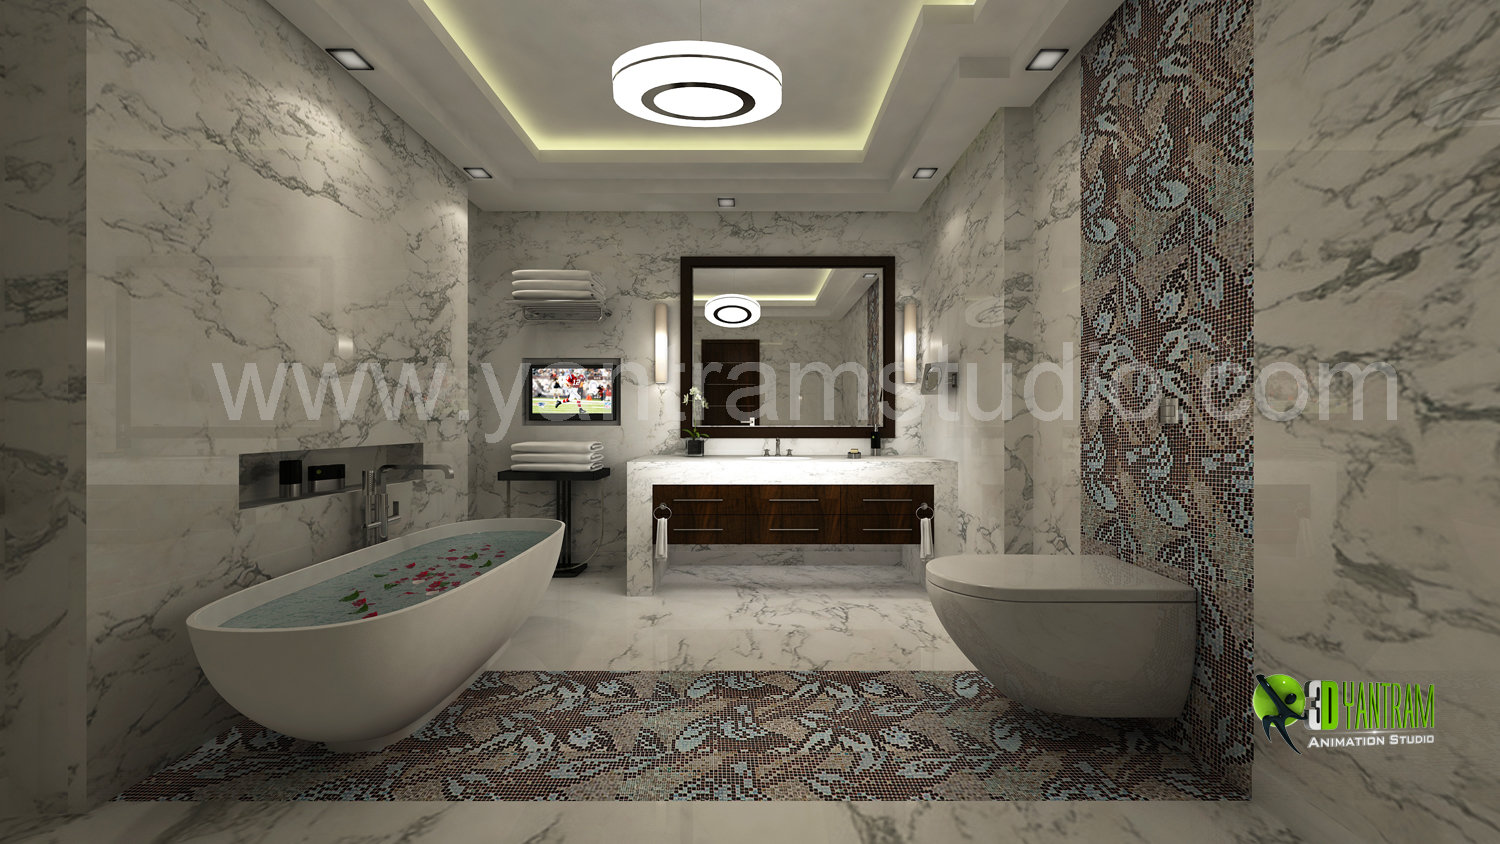 artstation - modern 3d bathroom interior design rendering - brazil